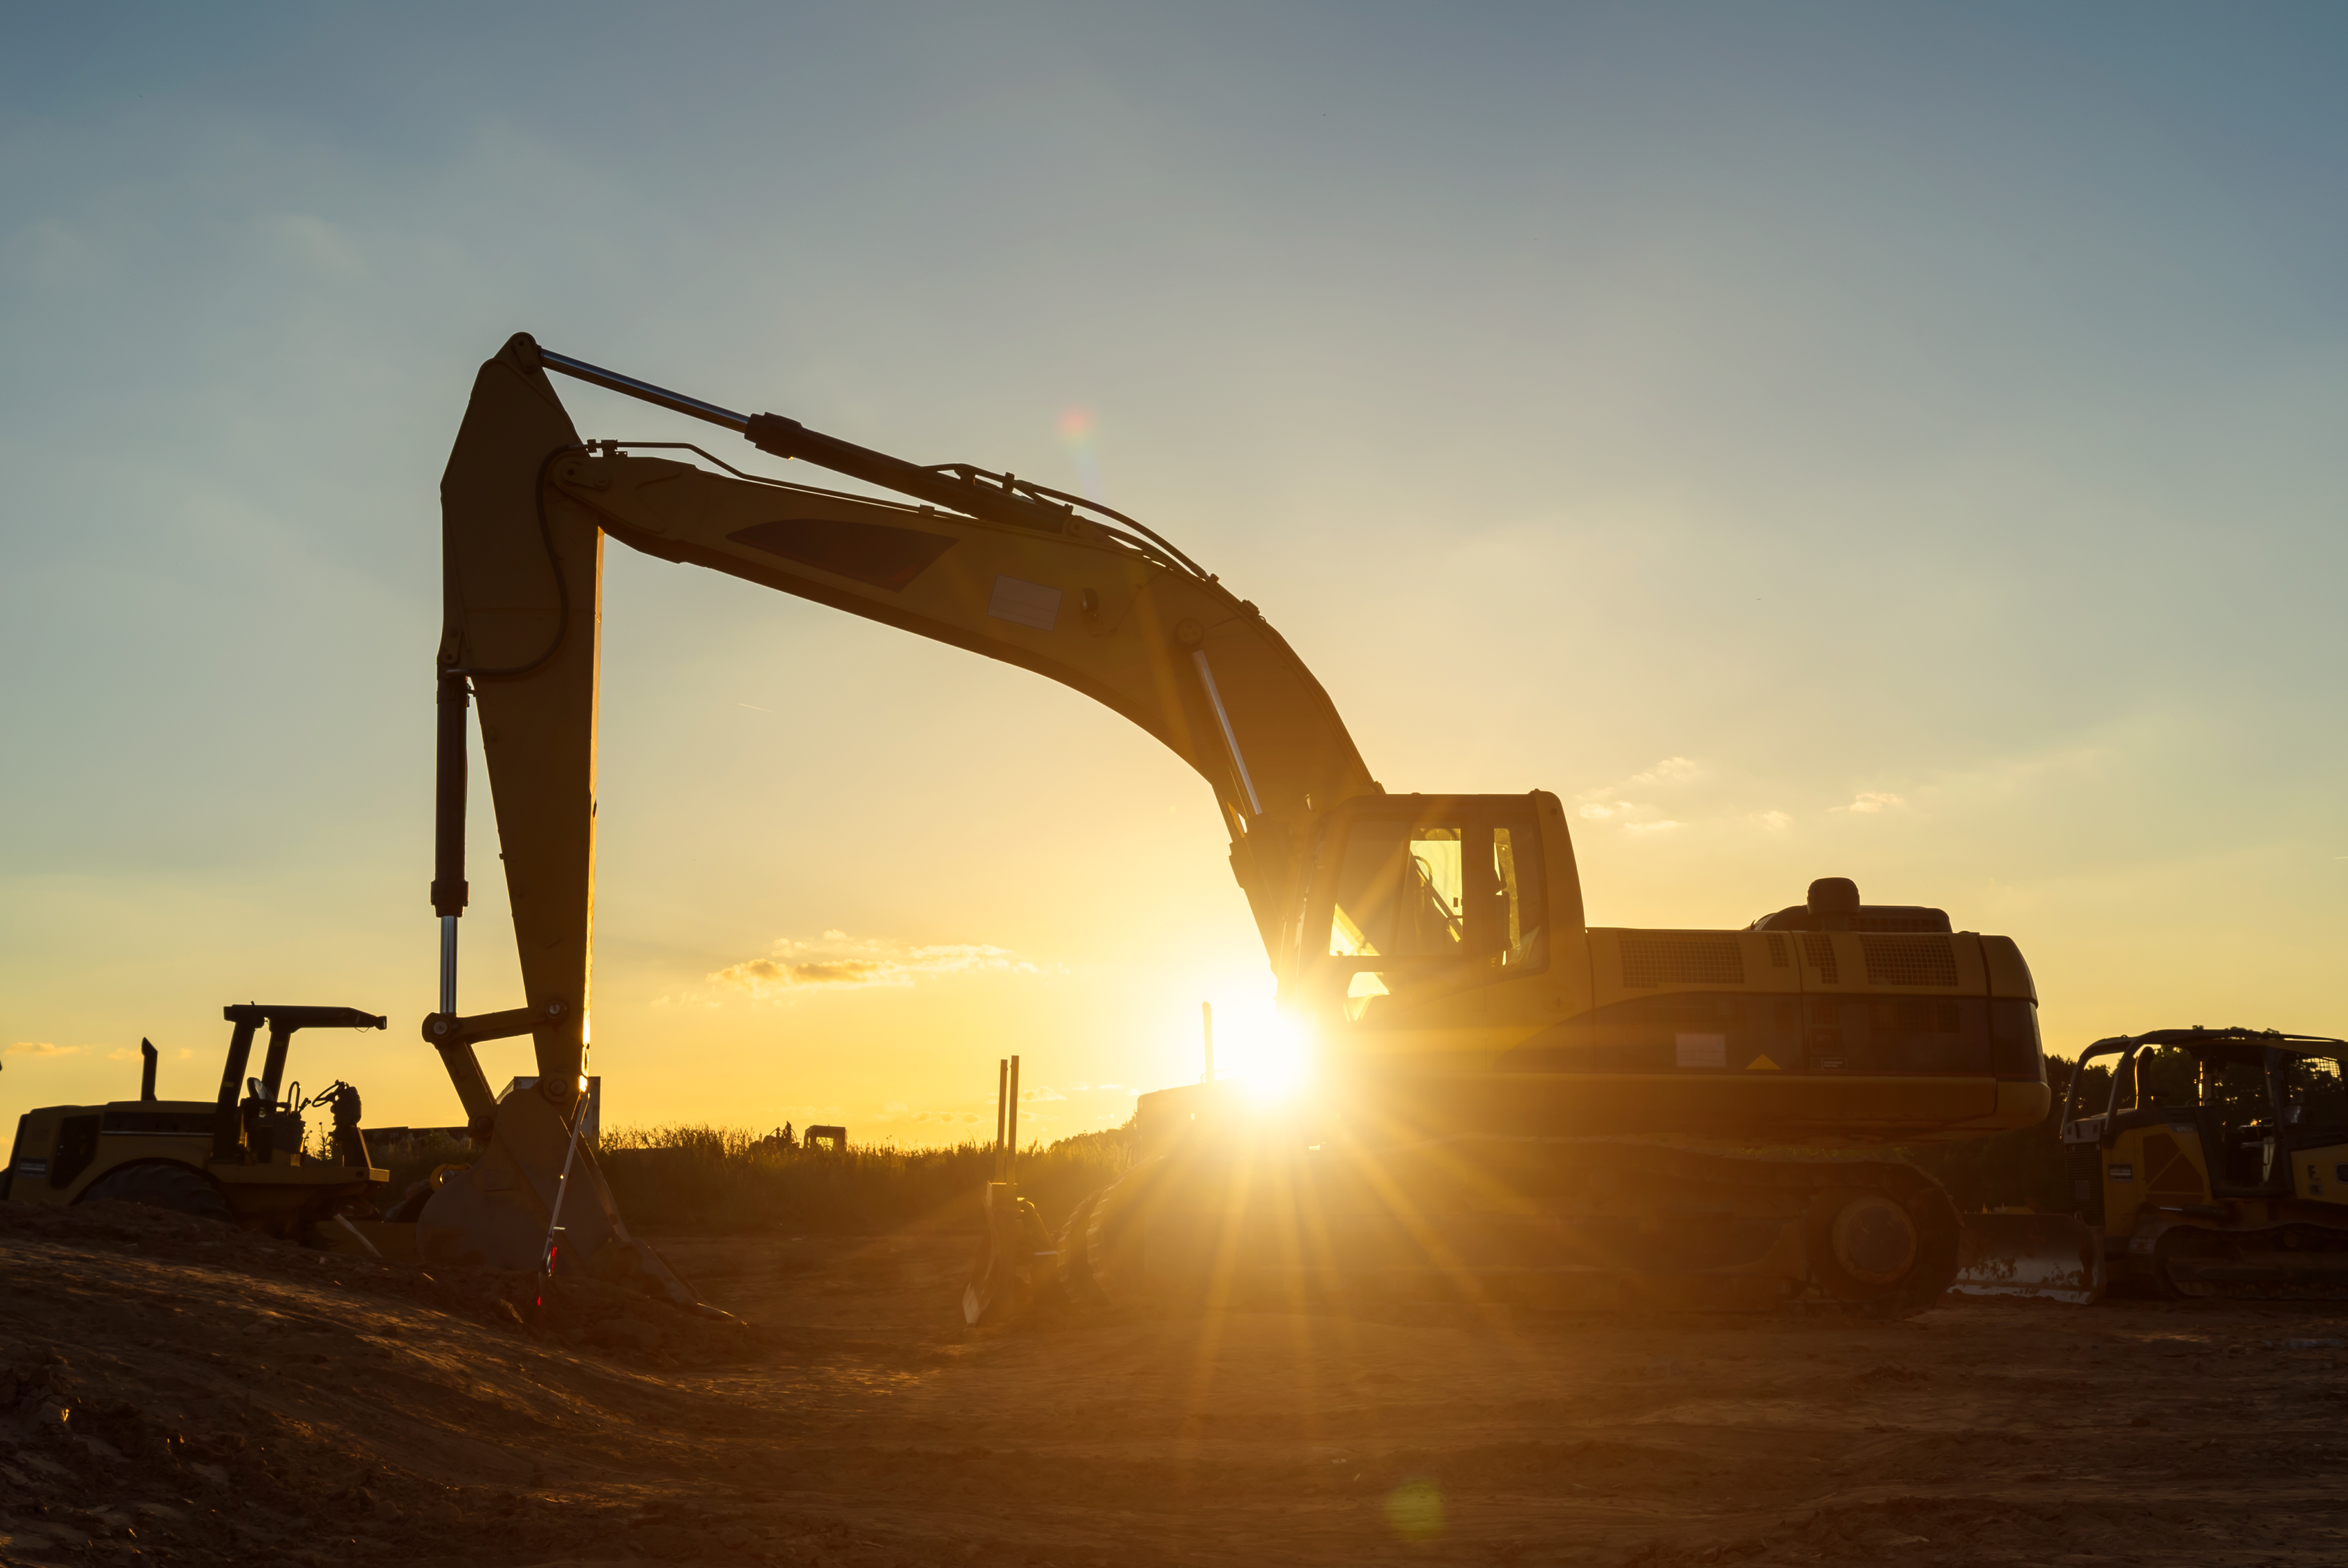 A construction excavator on jobsite sits idle, unused, as sun in the sky behind it sets